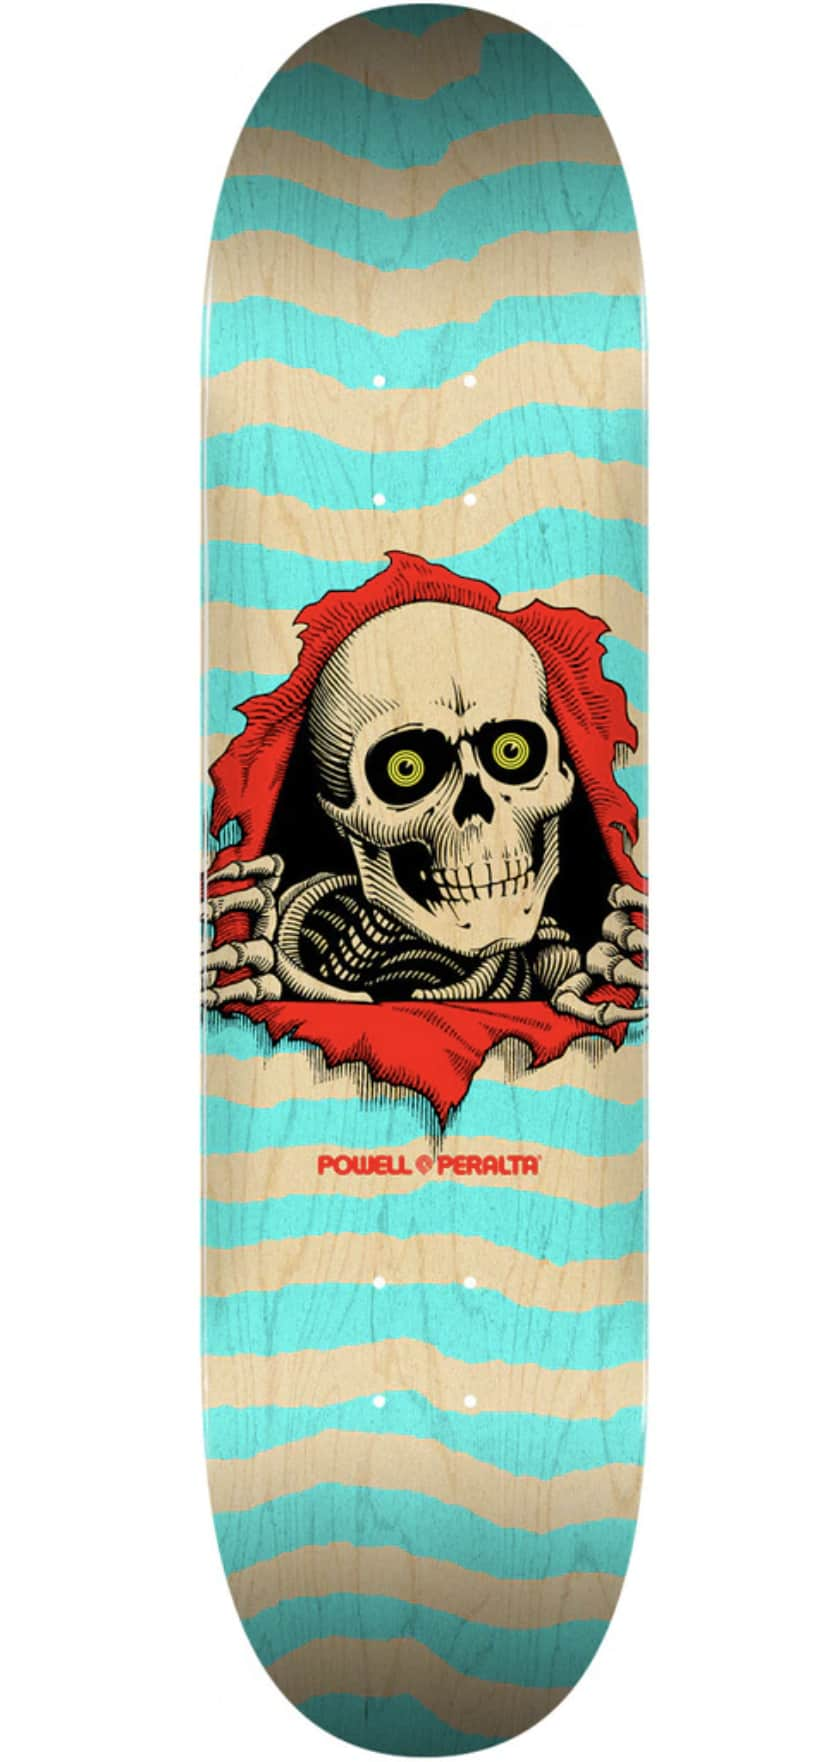 Powell Peralta Ripper Deck - Natural/Turquoise 8.0   Deck by Powell Peralta 1